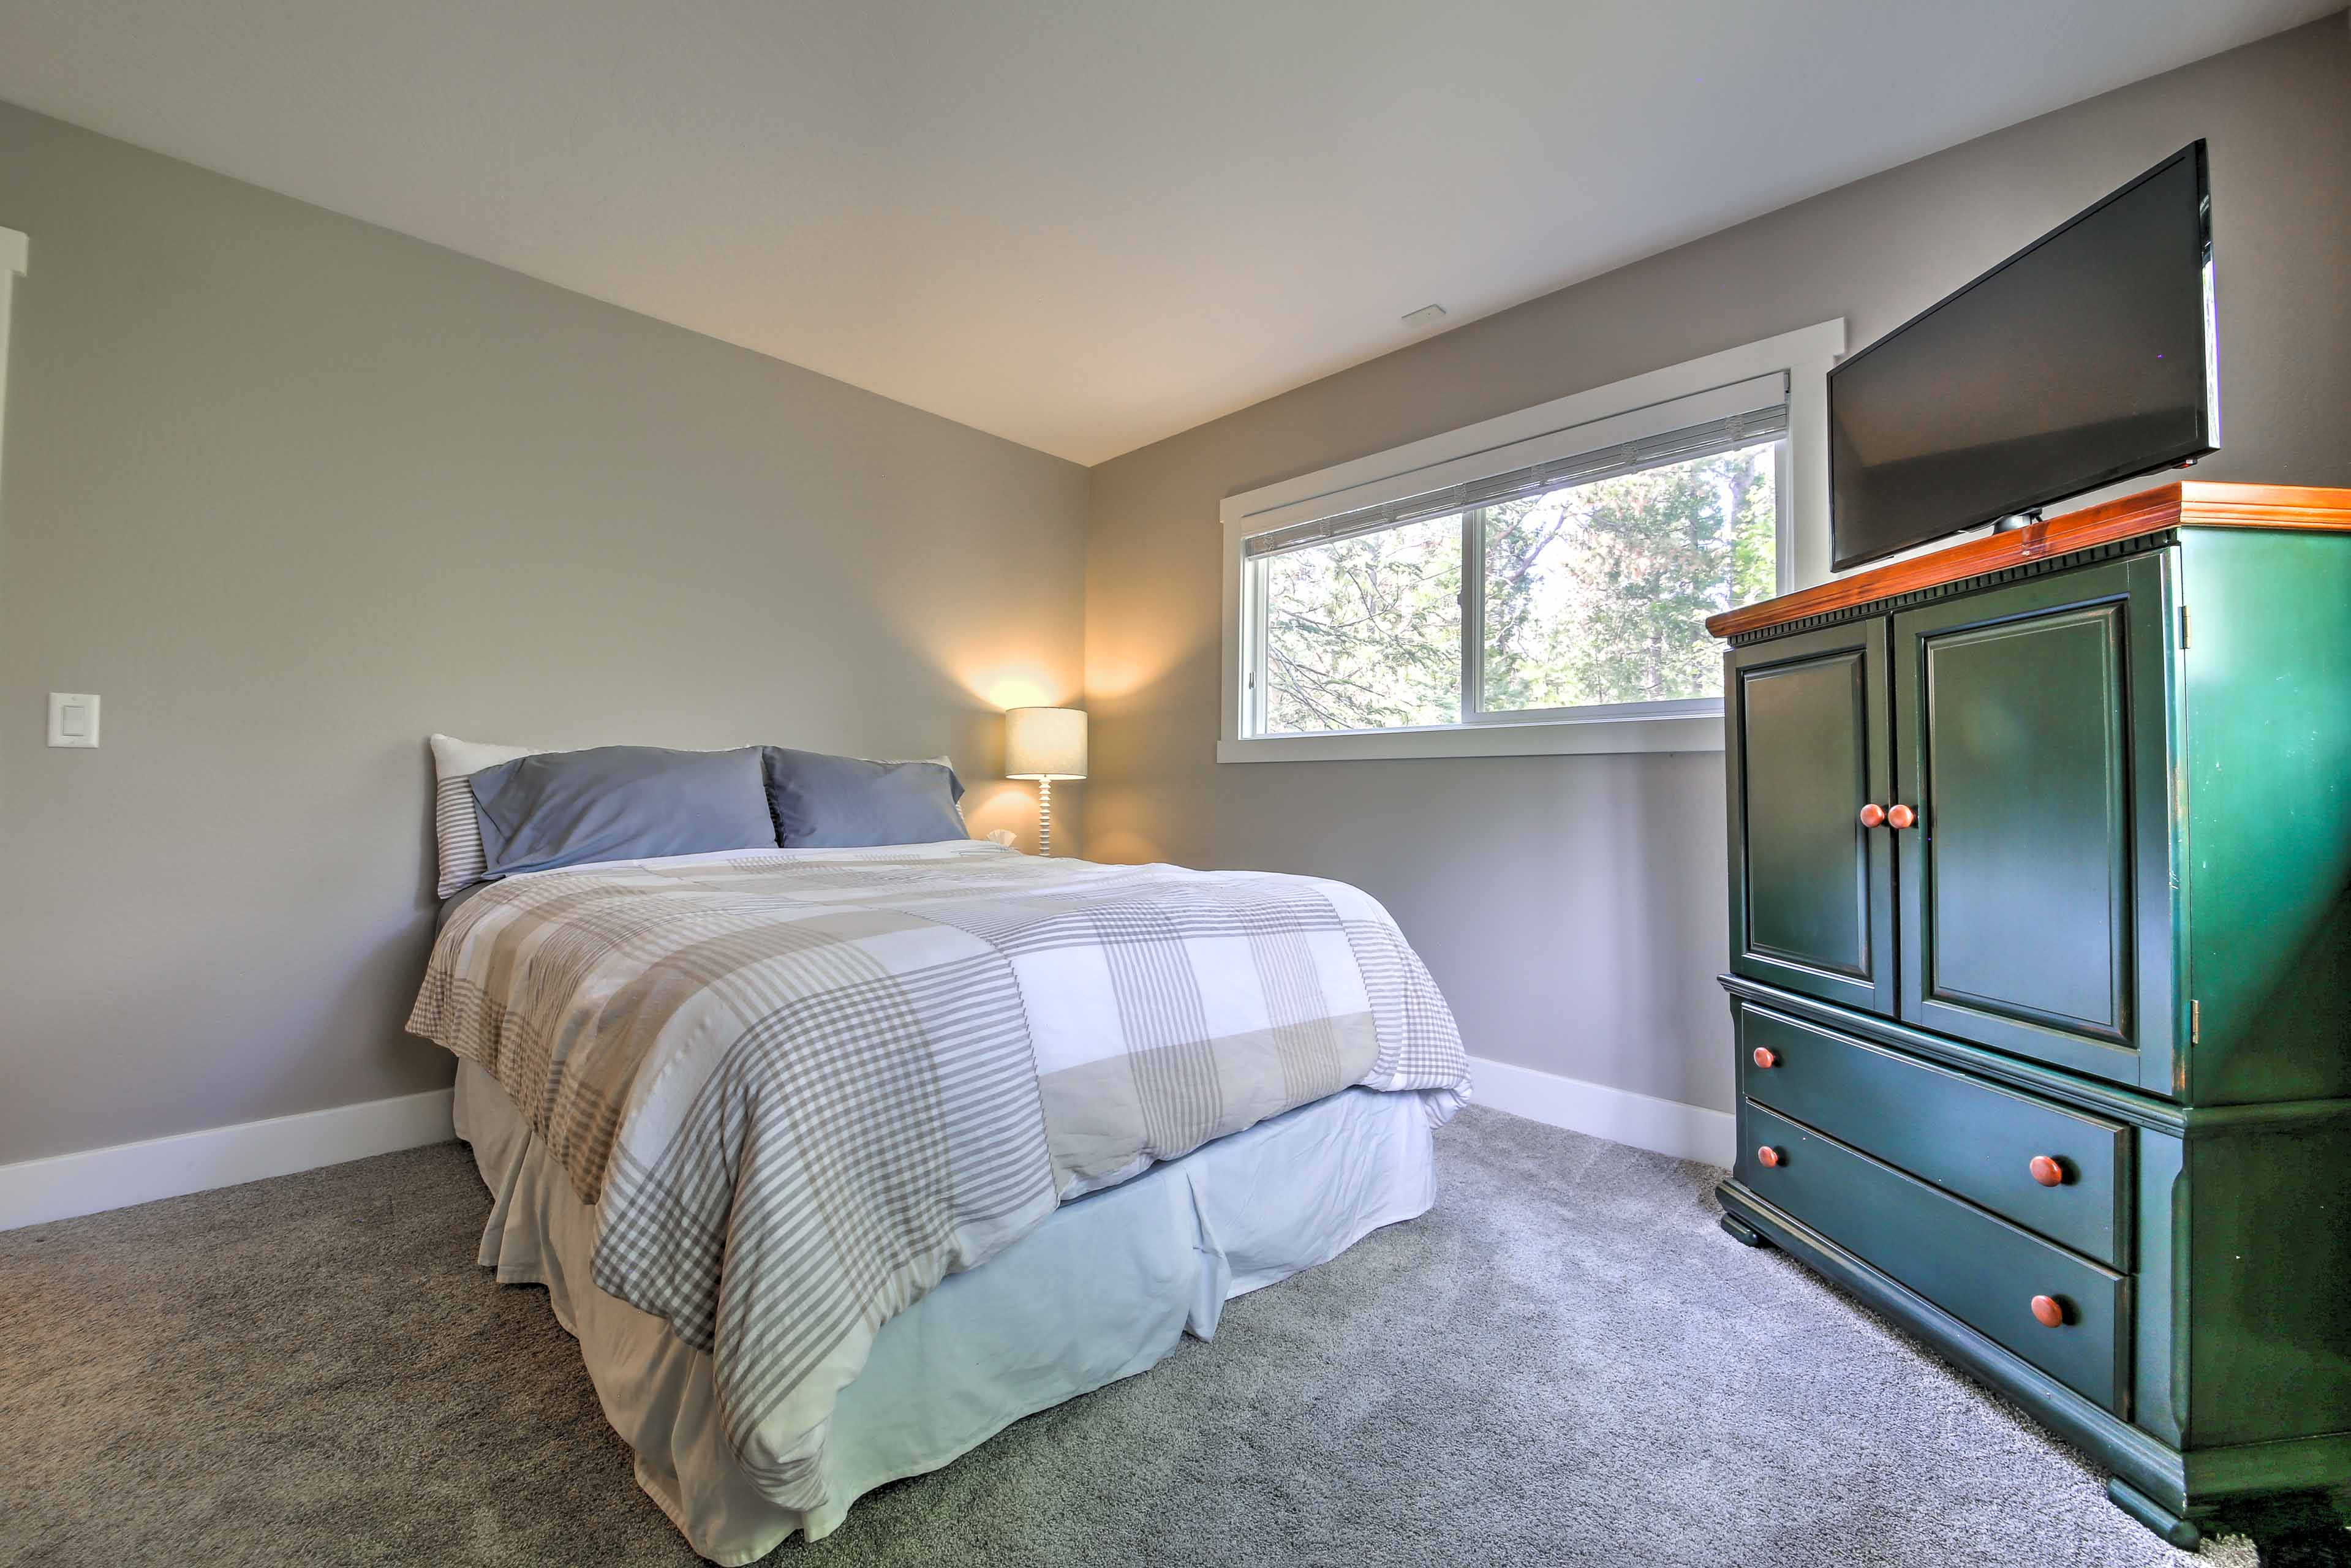 The third bedroom has a queen-sized bed.